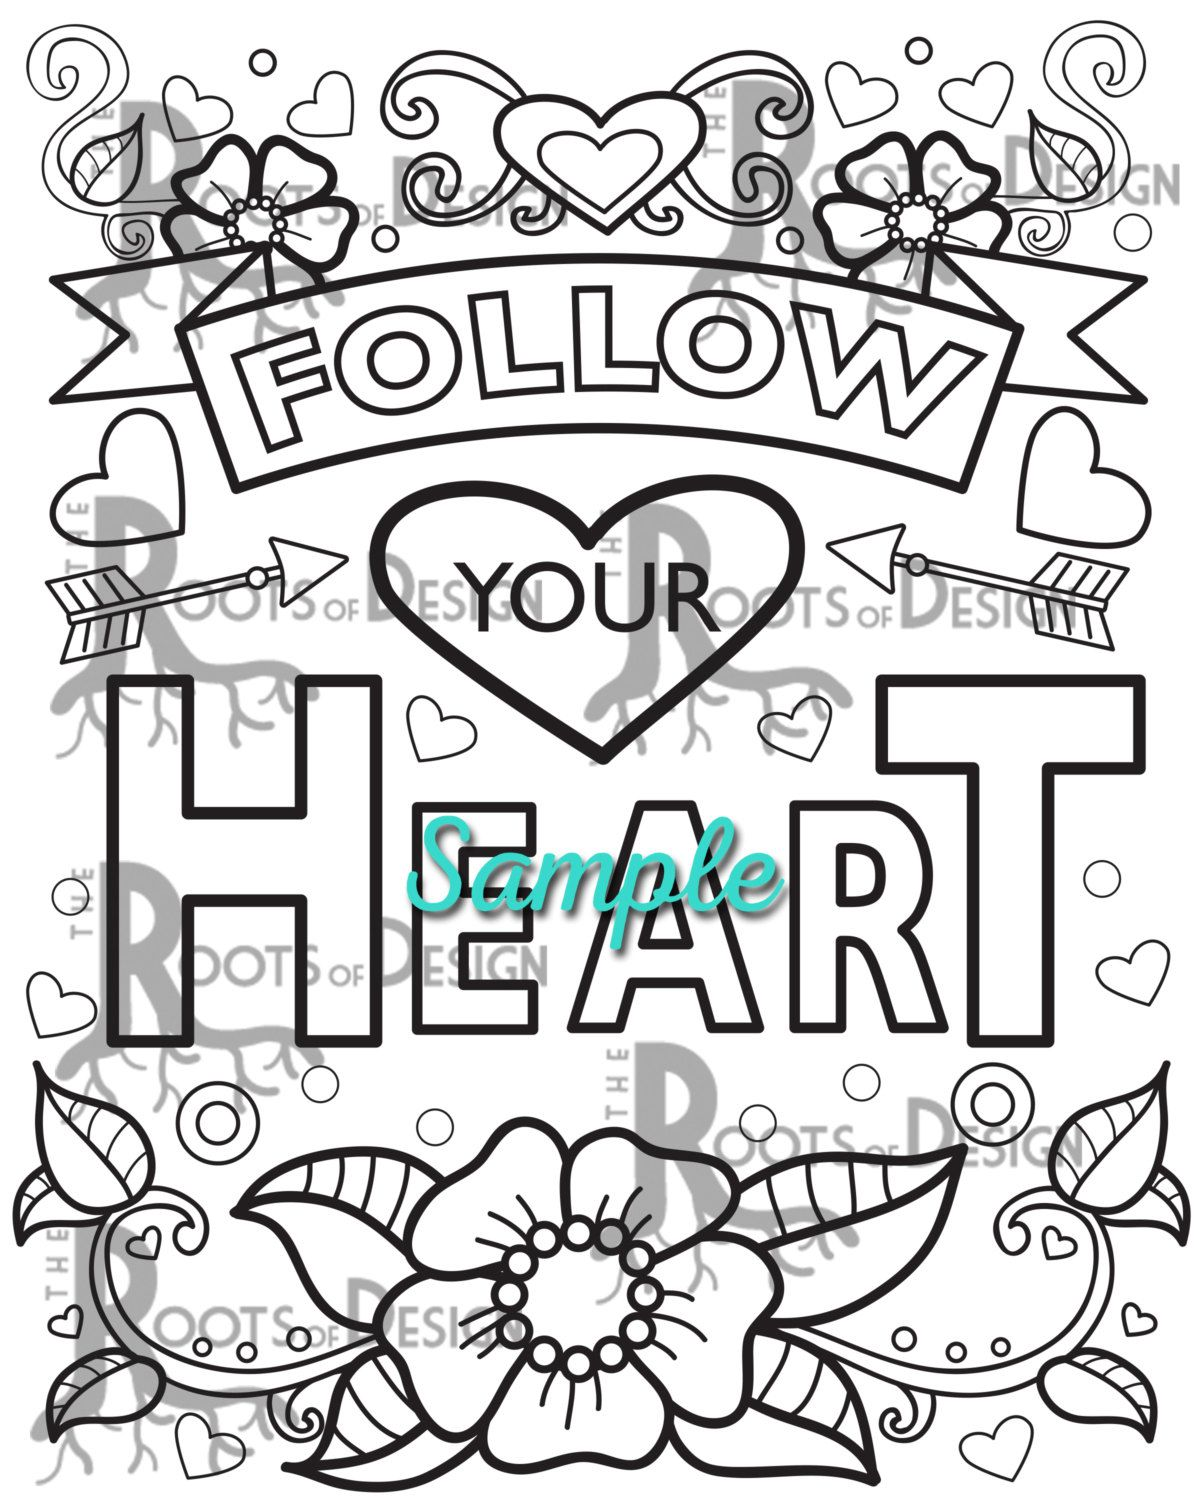 Instant Download Coloring Page Follow Your Heart Quote Coloring Print Doodle Art Printable Coloring Pages Love Coloring Pages Following Your Heart Quotes